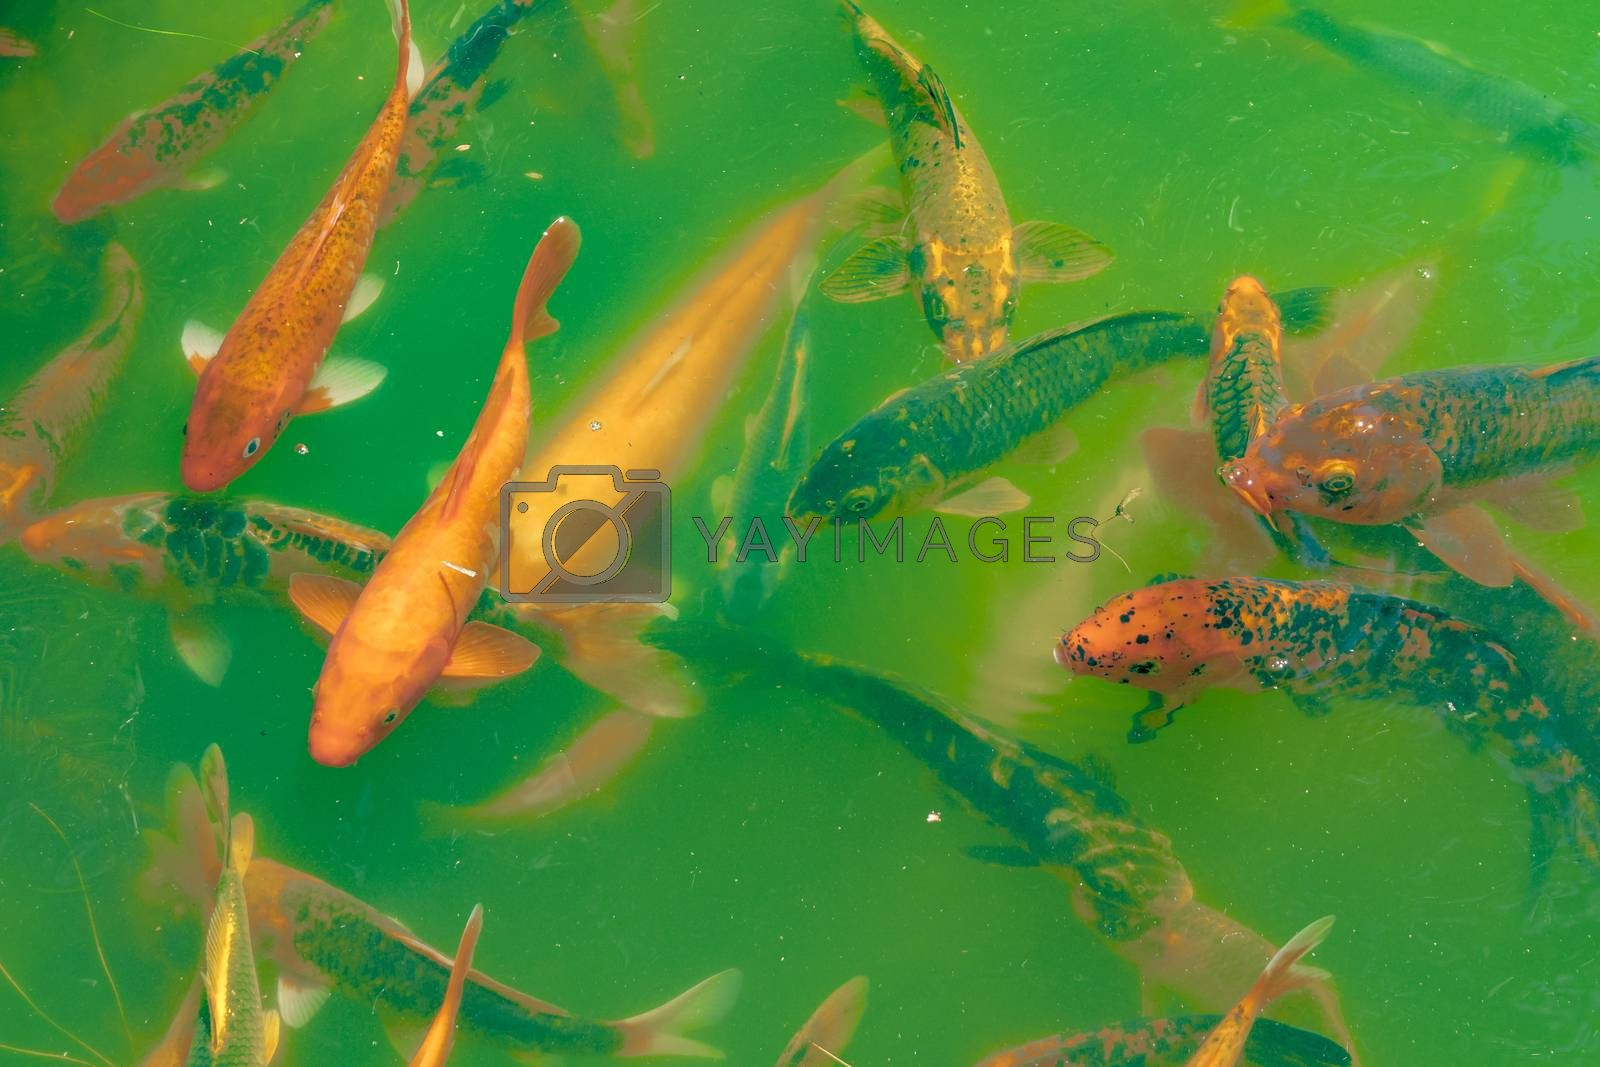 Koi Fishes at Pond by DanFLCreative